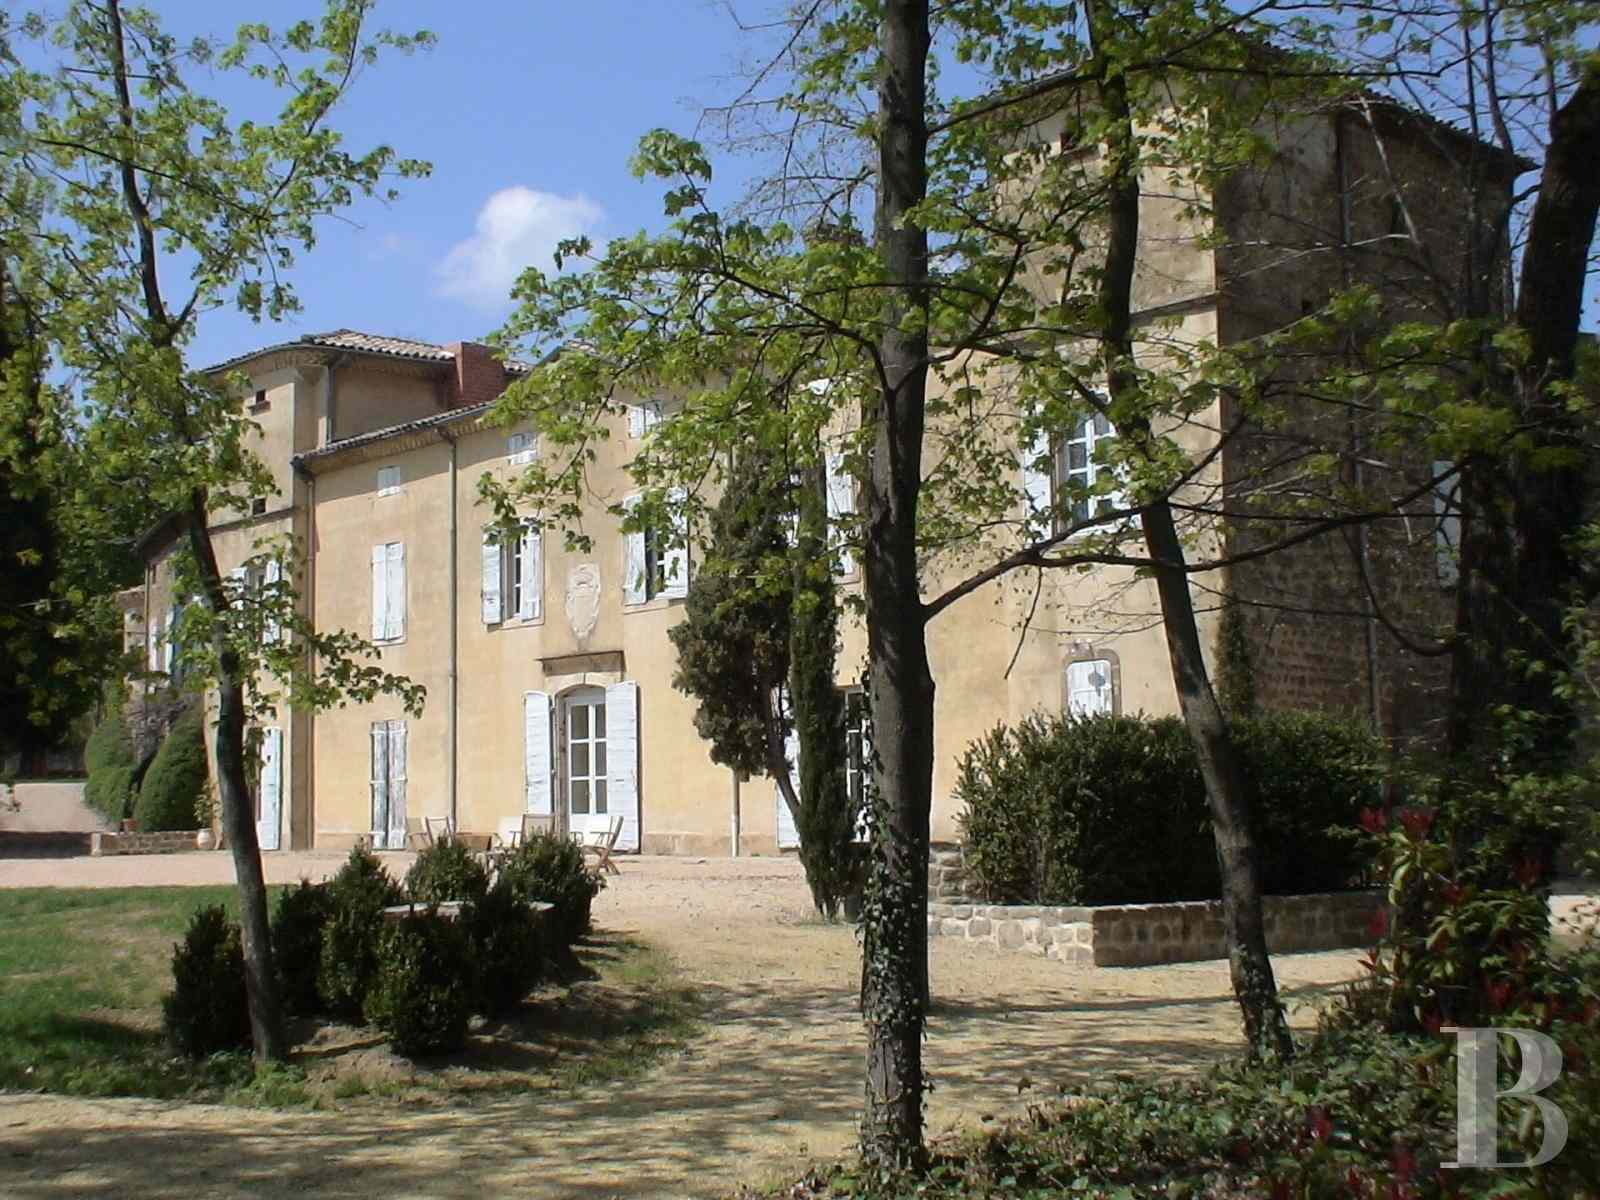 property for sale France rhones alps ardeche 18th - 2 zoom